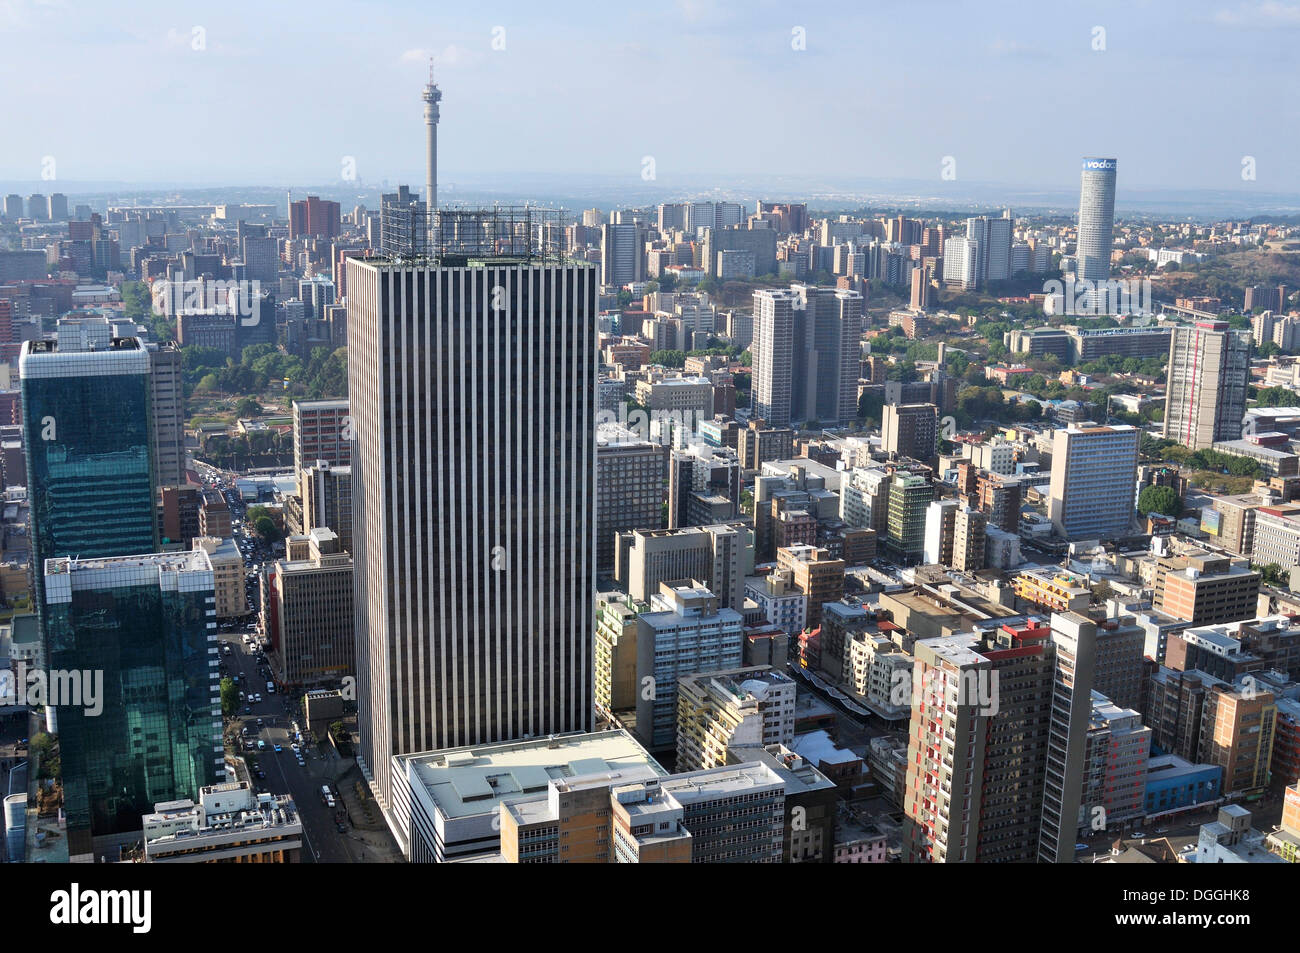 View over Johannesburg from the terrace of the Carlton Centre, with a height of 220m the highest skyscraper in Africa - Stock Image